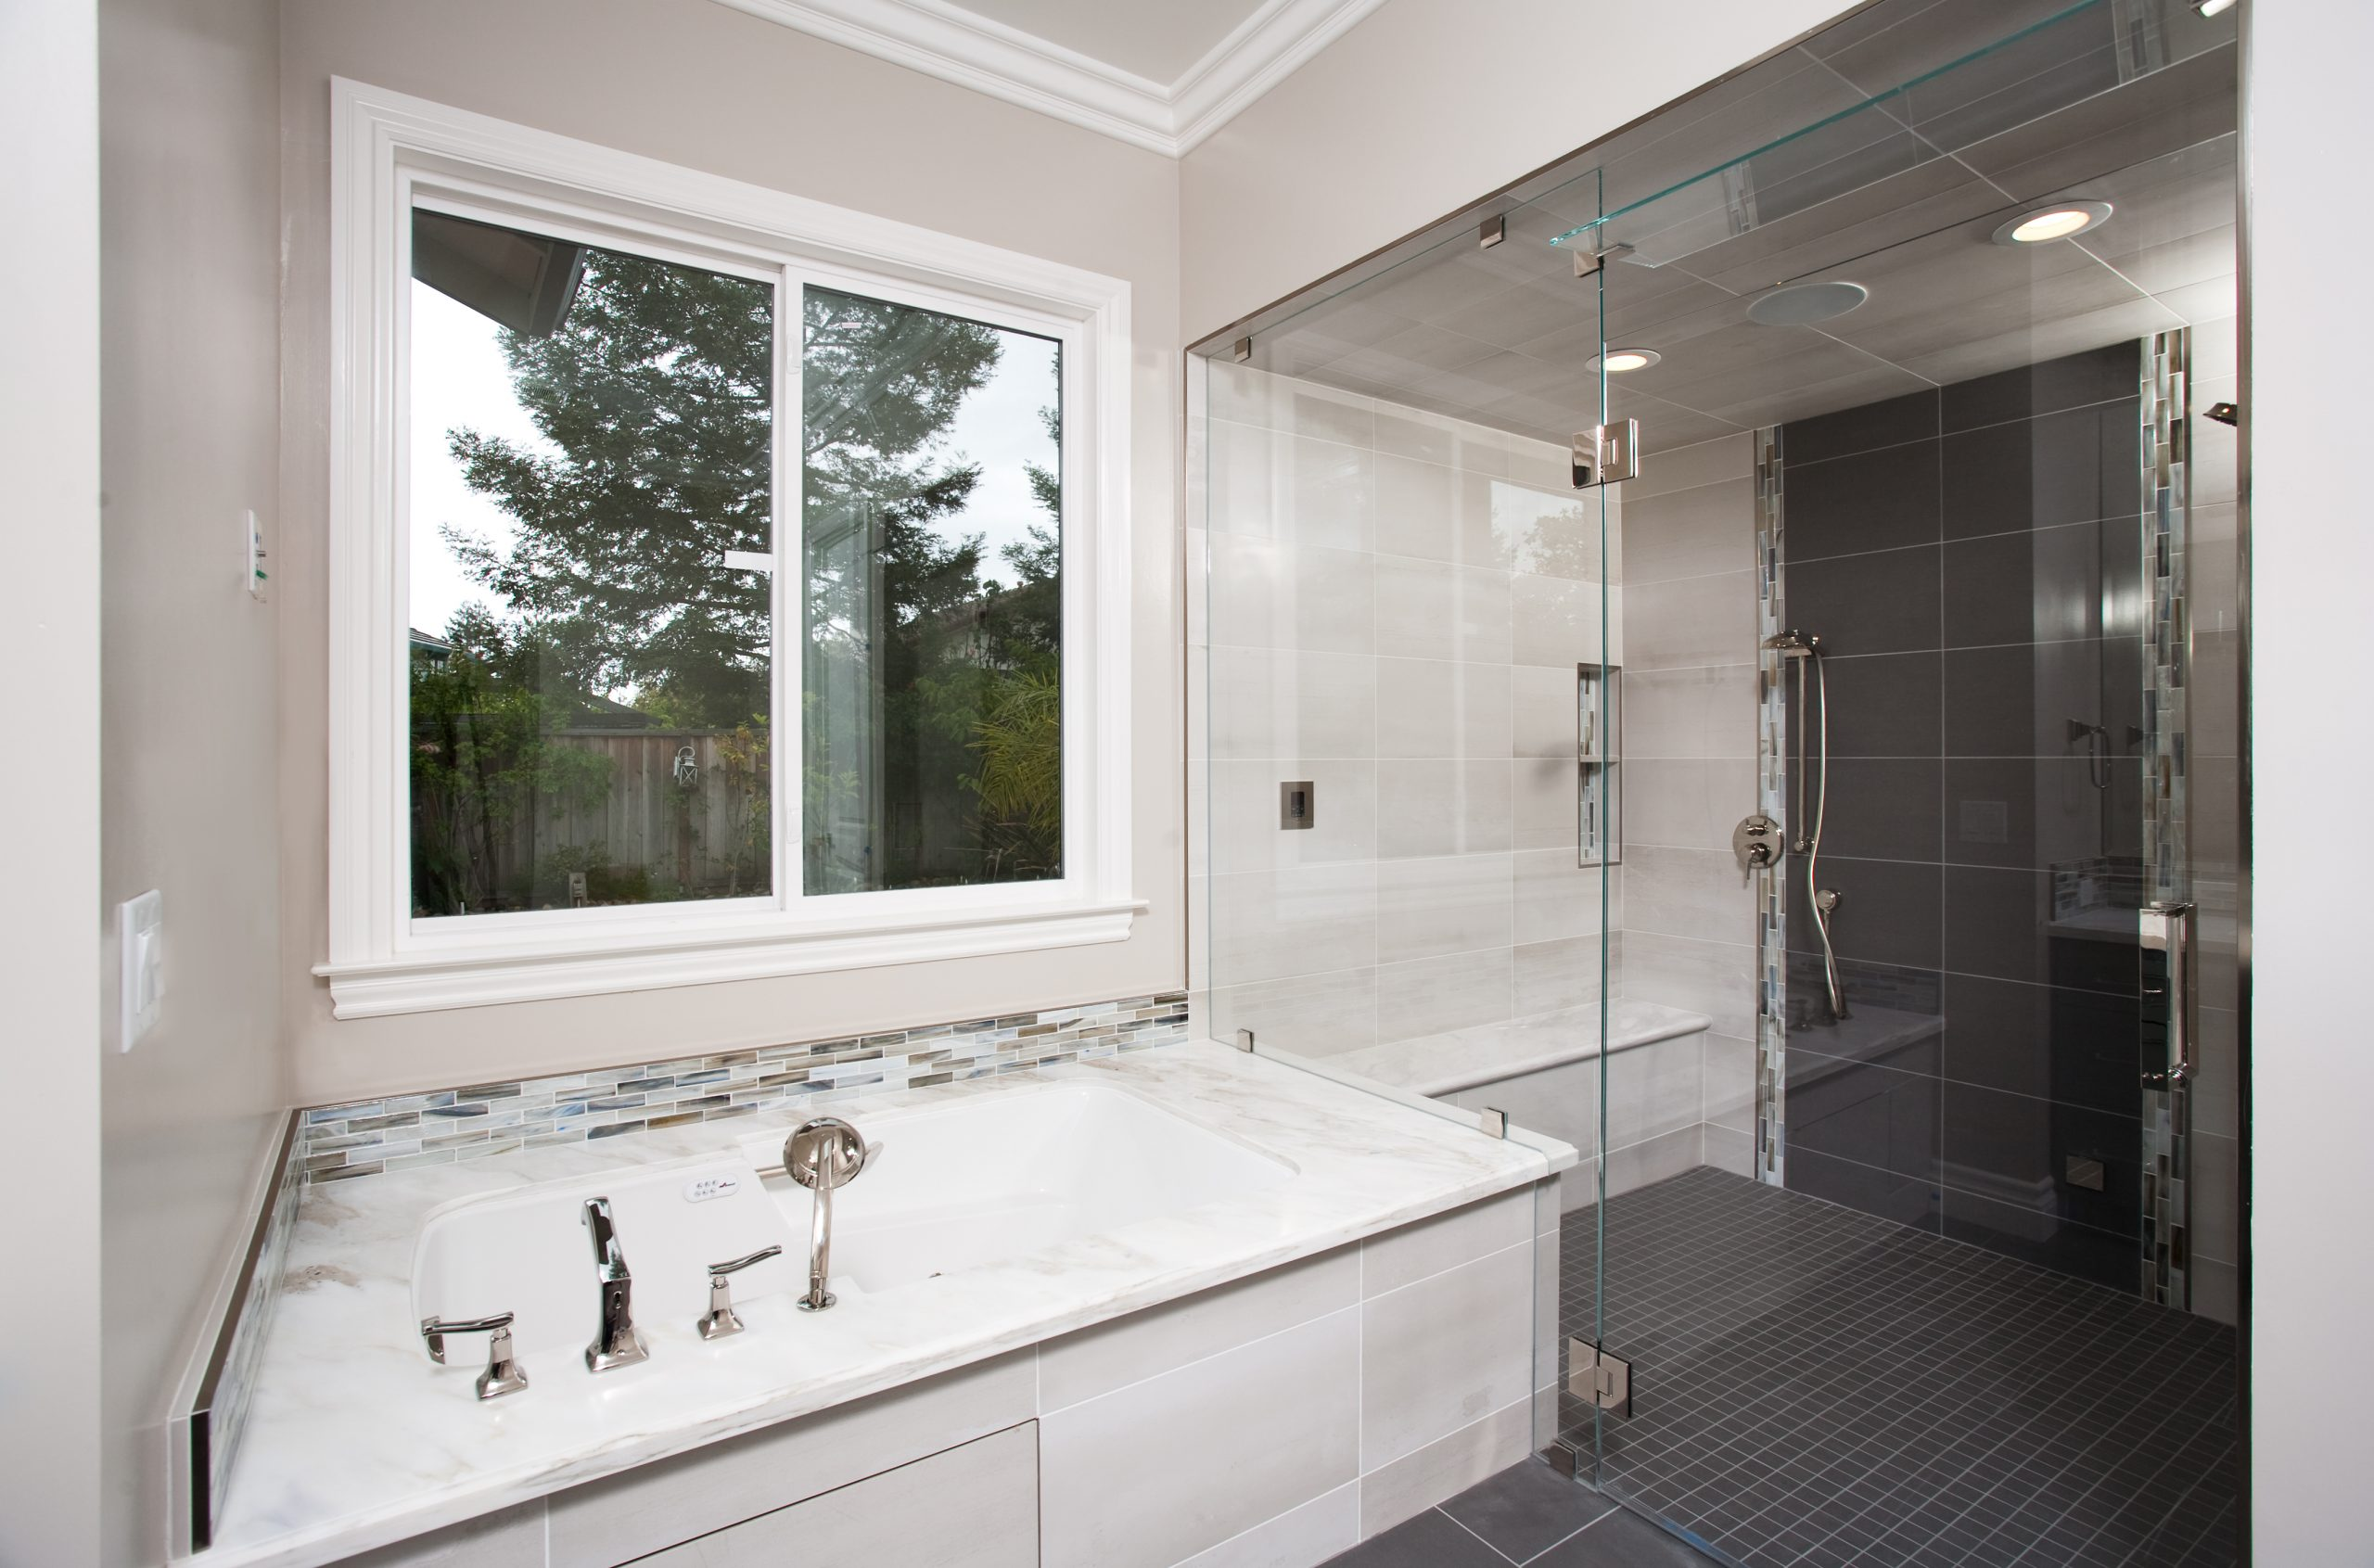 A master bathroom with Jacuzzi tub and large walk in glass shower.